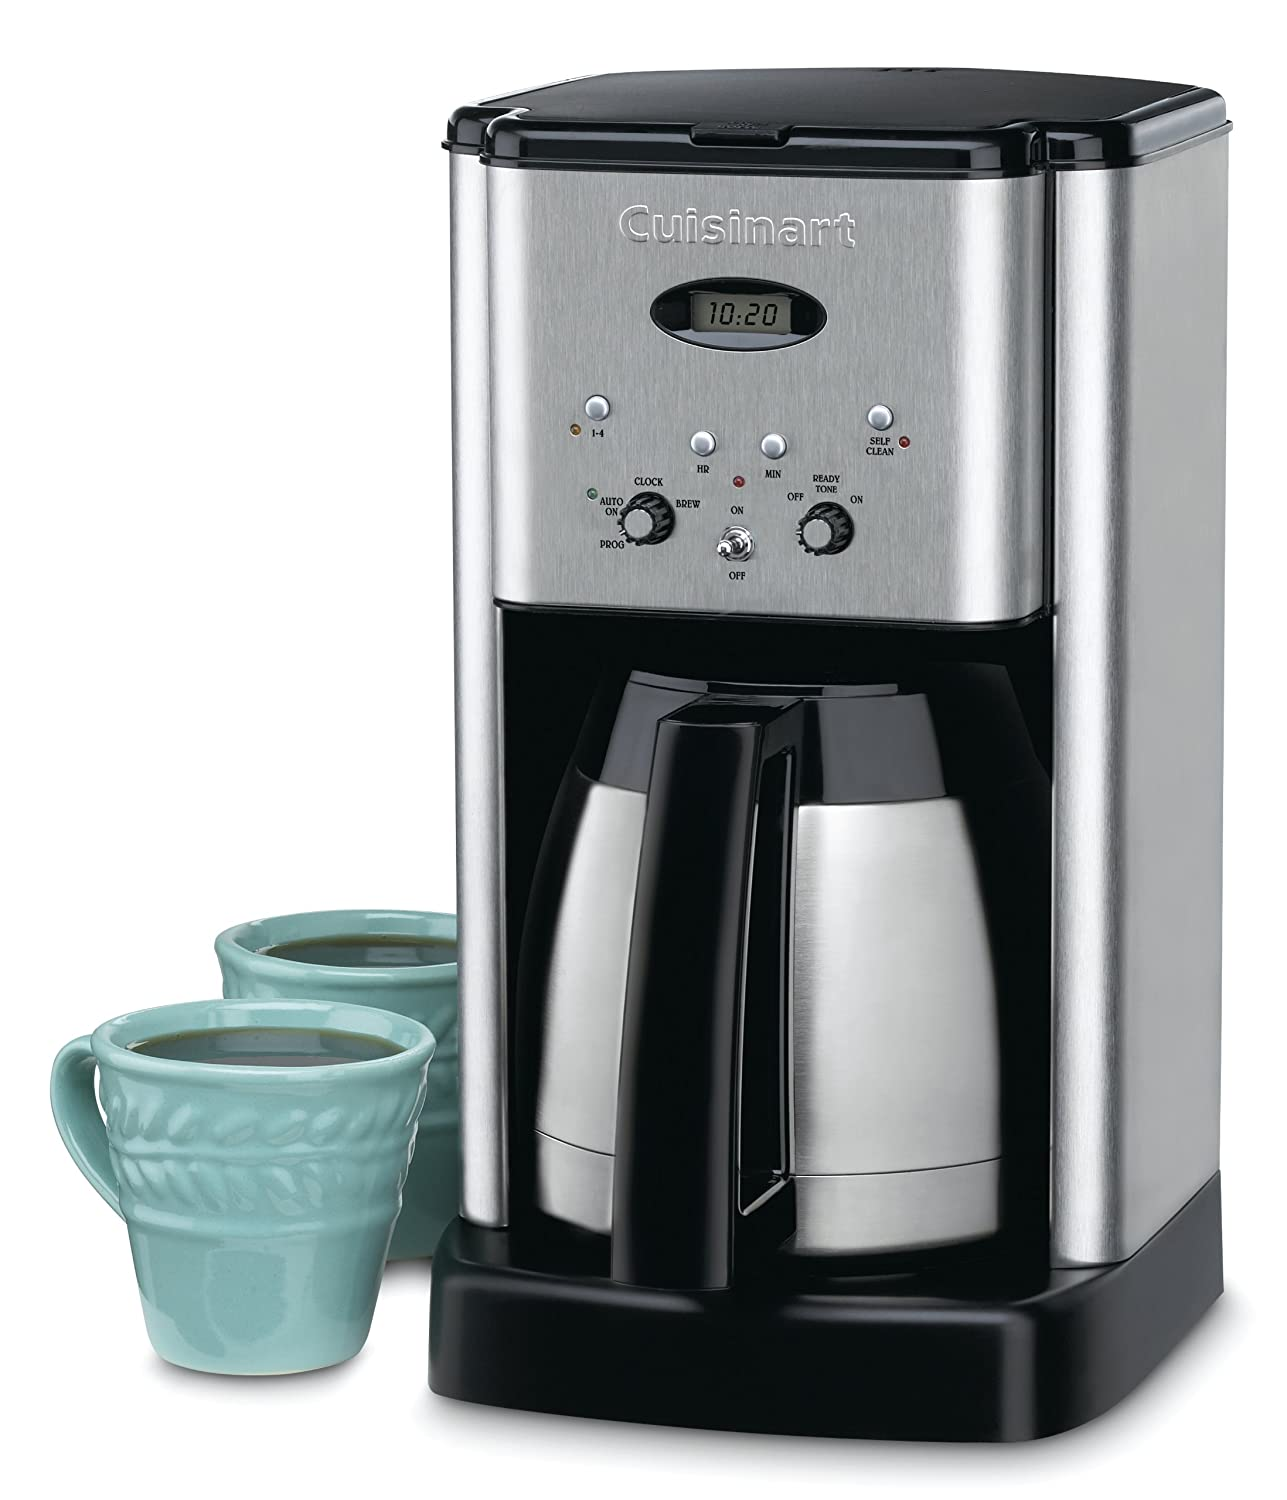 Amazoncom Cuisinart Dcc 1400 Brew Central 10 Cup Thermal Coffee Maker, Silver